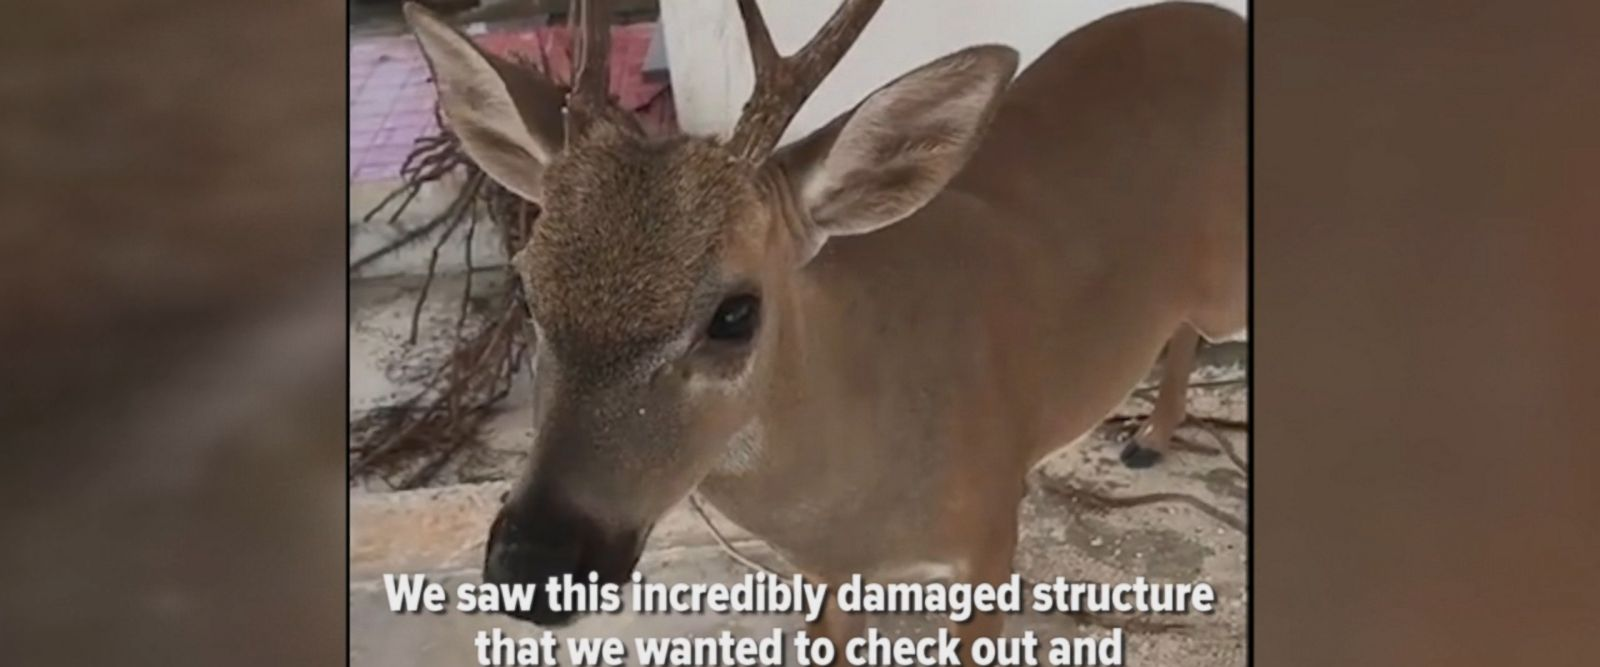 A firefighter in Monroe County, Florida, encountered a dehydrated deer on Sept. 18, and decided to lend a helping hand.